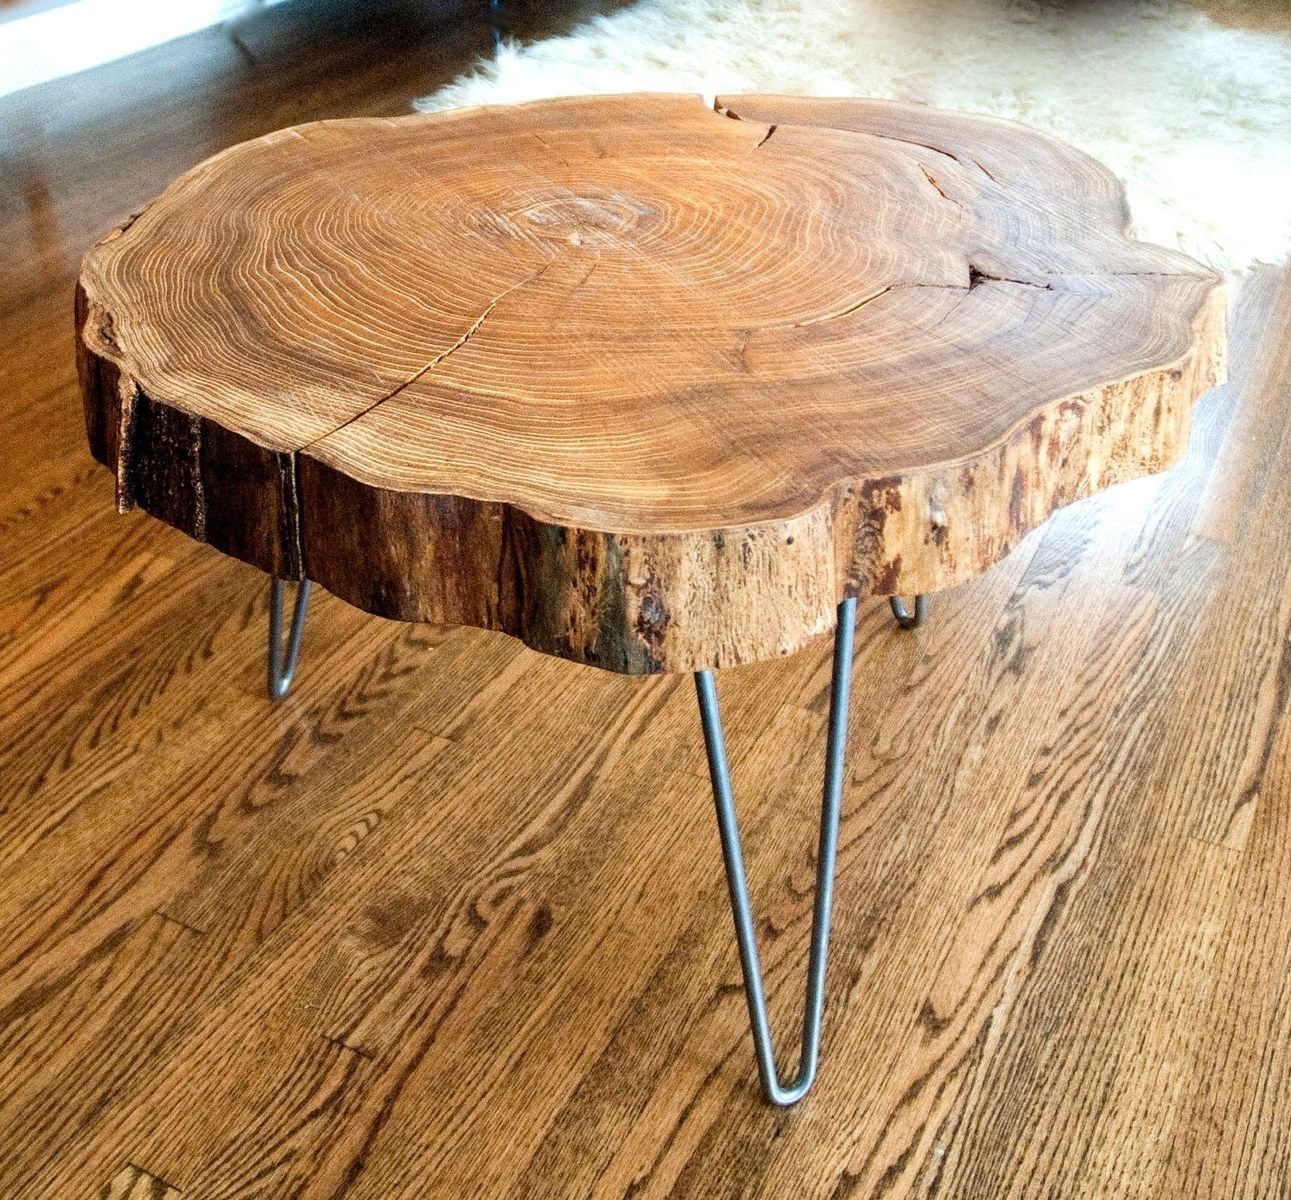 Custom Made Natural Live Edge Round Slab Side Table Coffee Table With Steel Legs Eclectic Coffee Tables Coffee Table Wood Log Coffee Table [ 1200 x 1291 Pixel ]